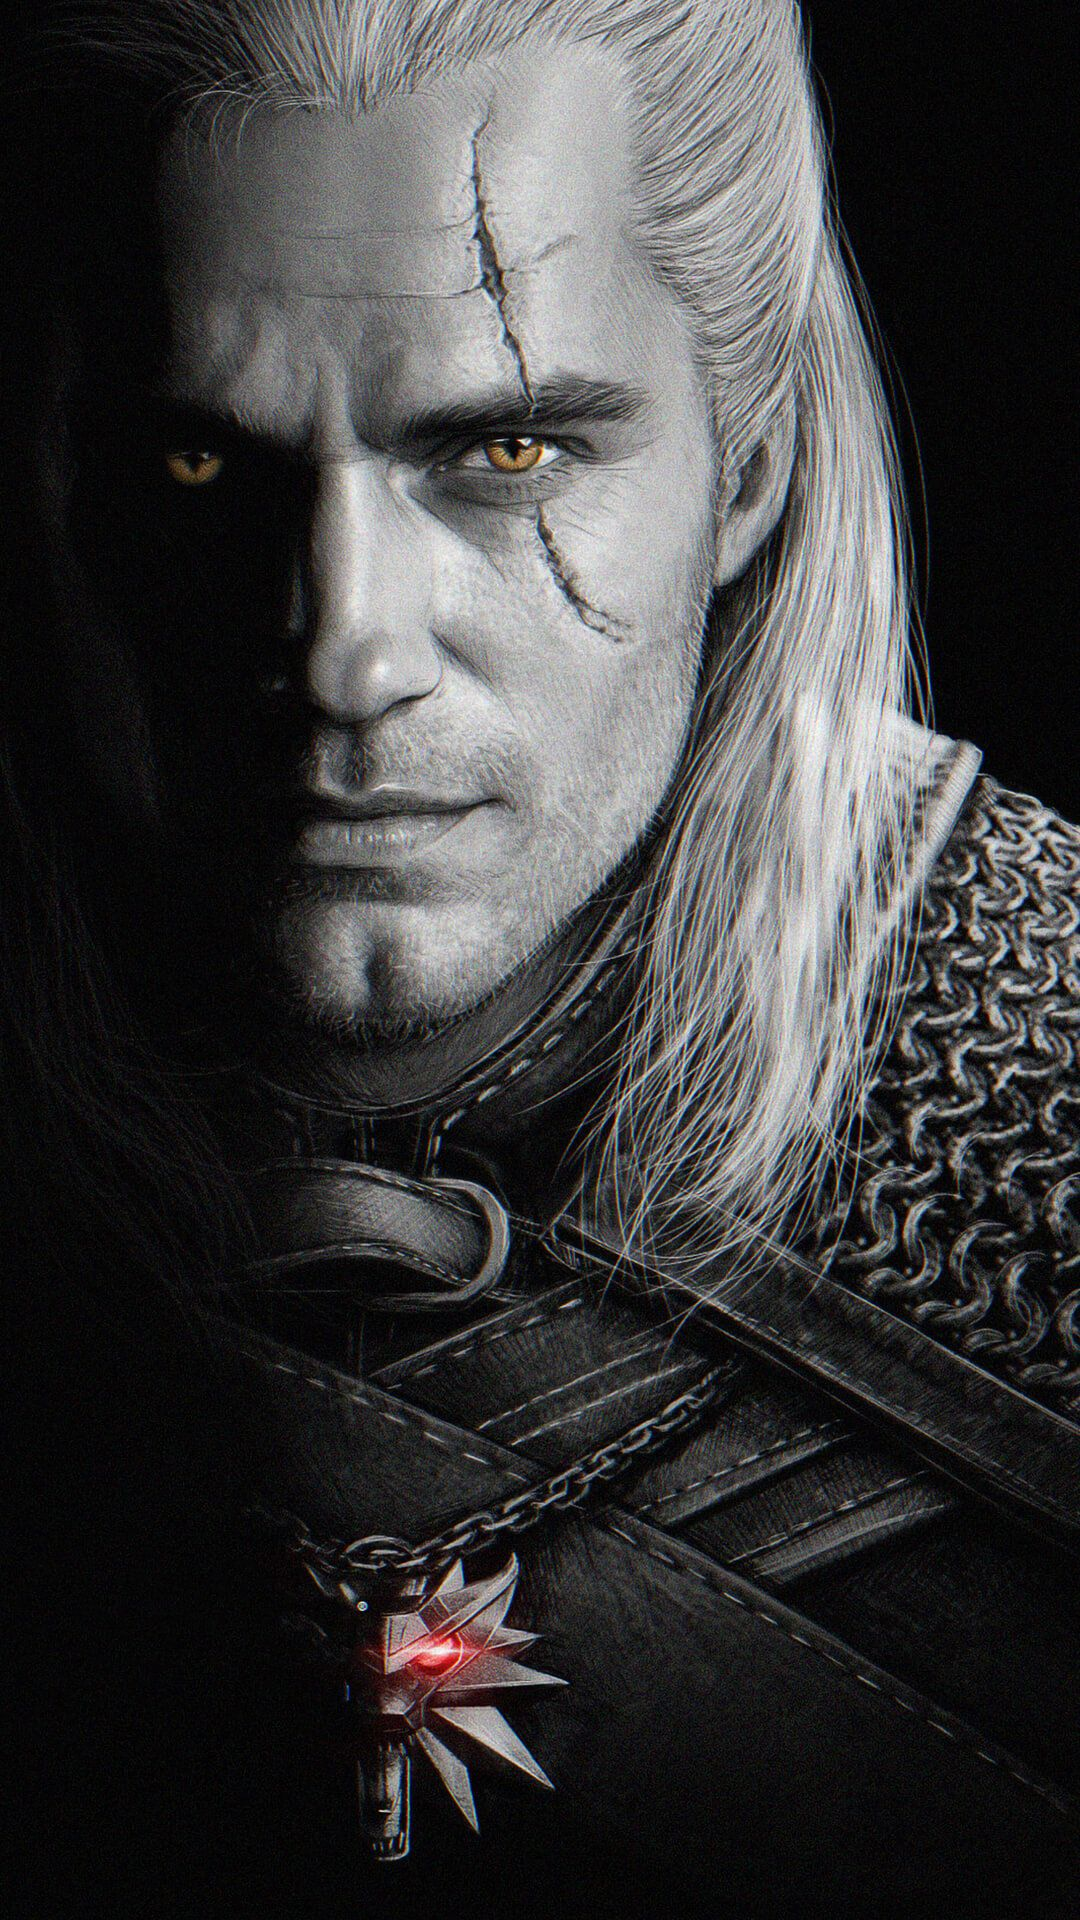 The Witcher Wallpapers Phone Background Mobile 2020 The Witcher Movie The Witcher The Witcher Game